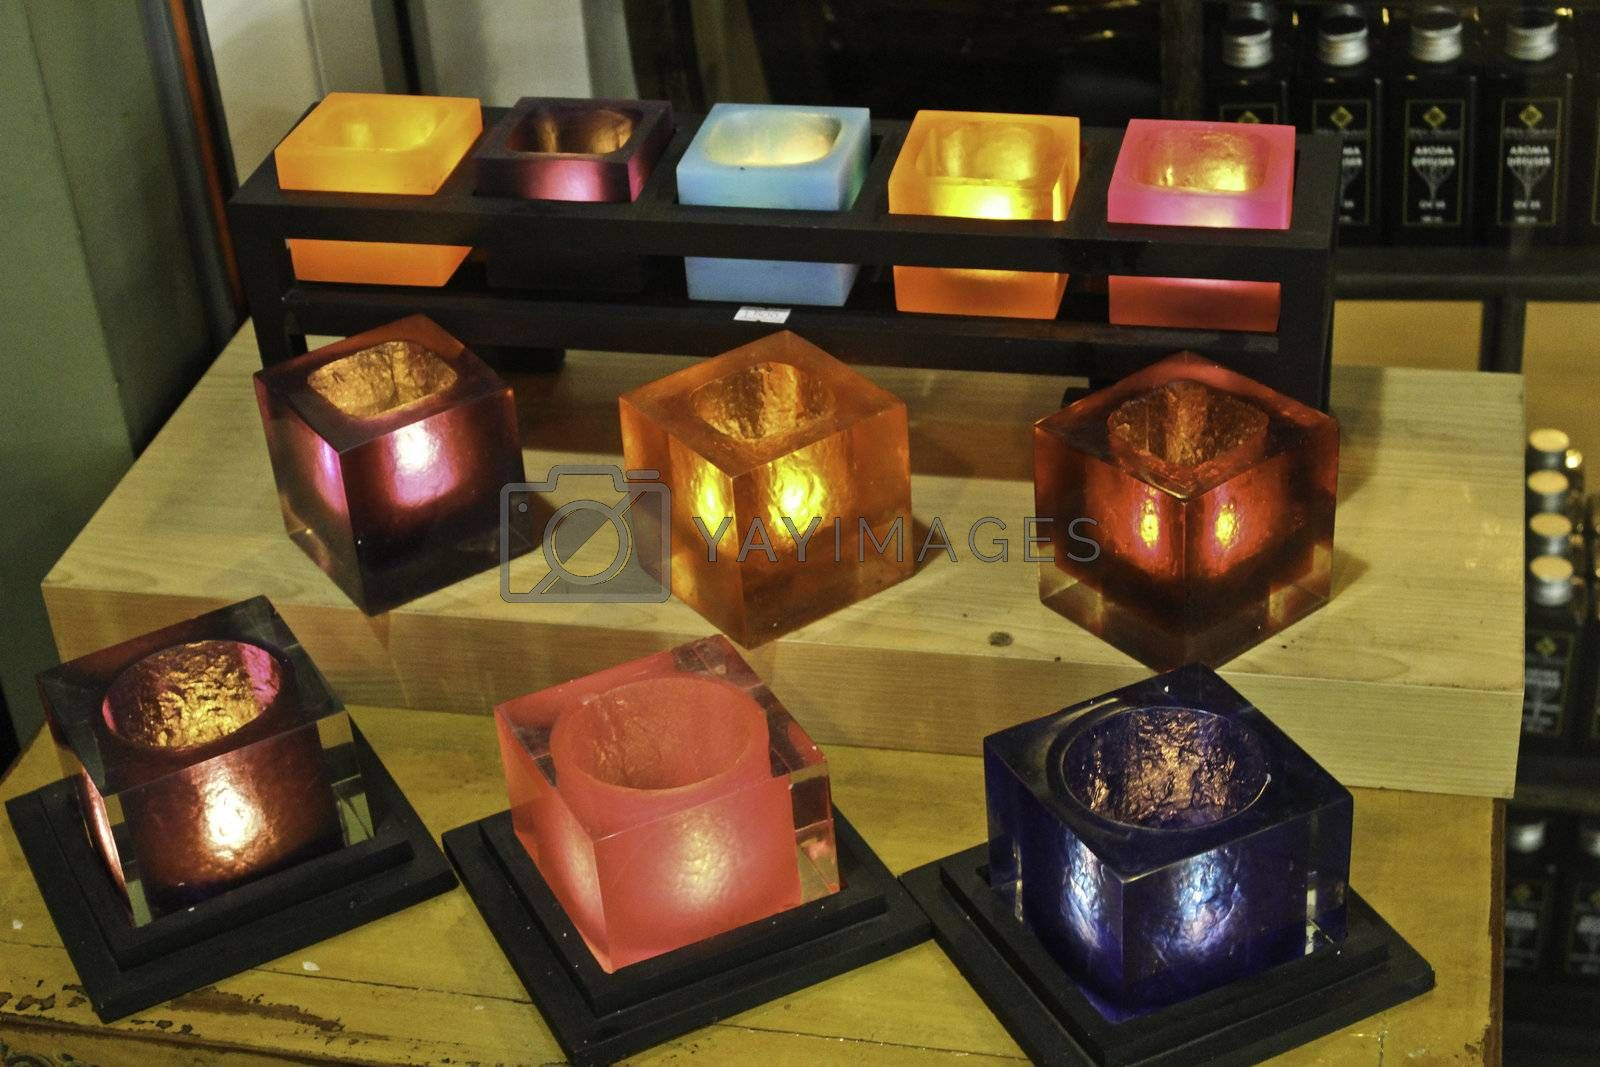 aroma candle in the colorful box glasses